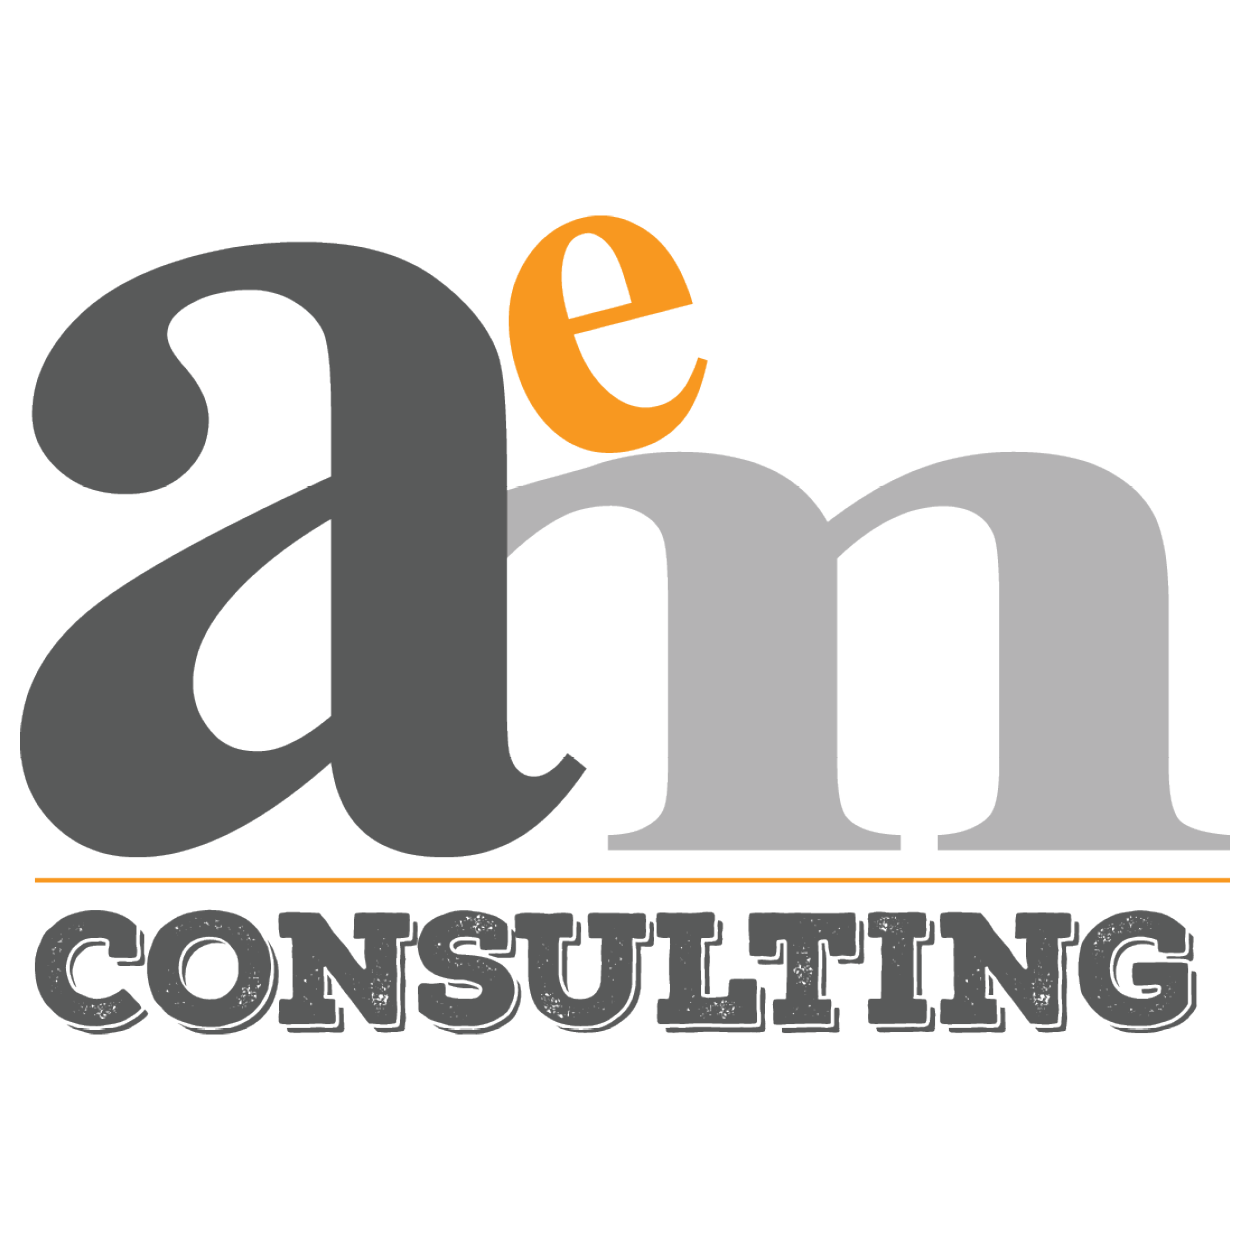 AEM Consulting (Central) Limited